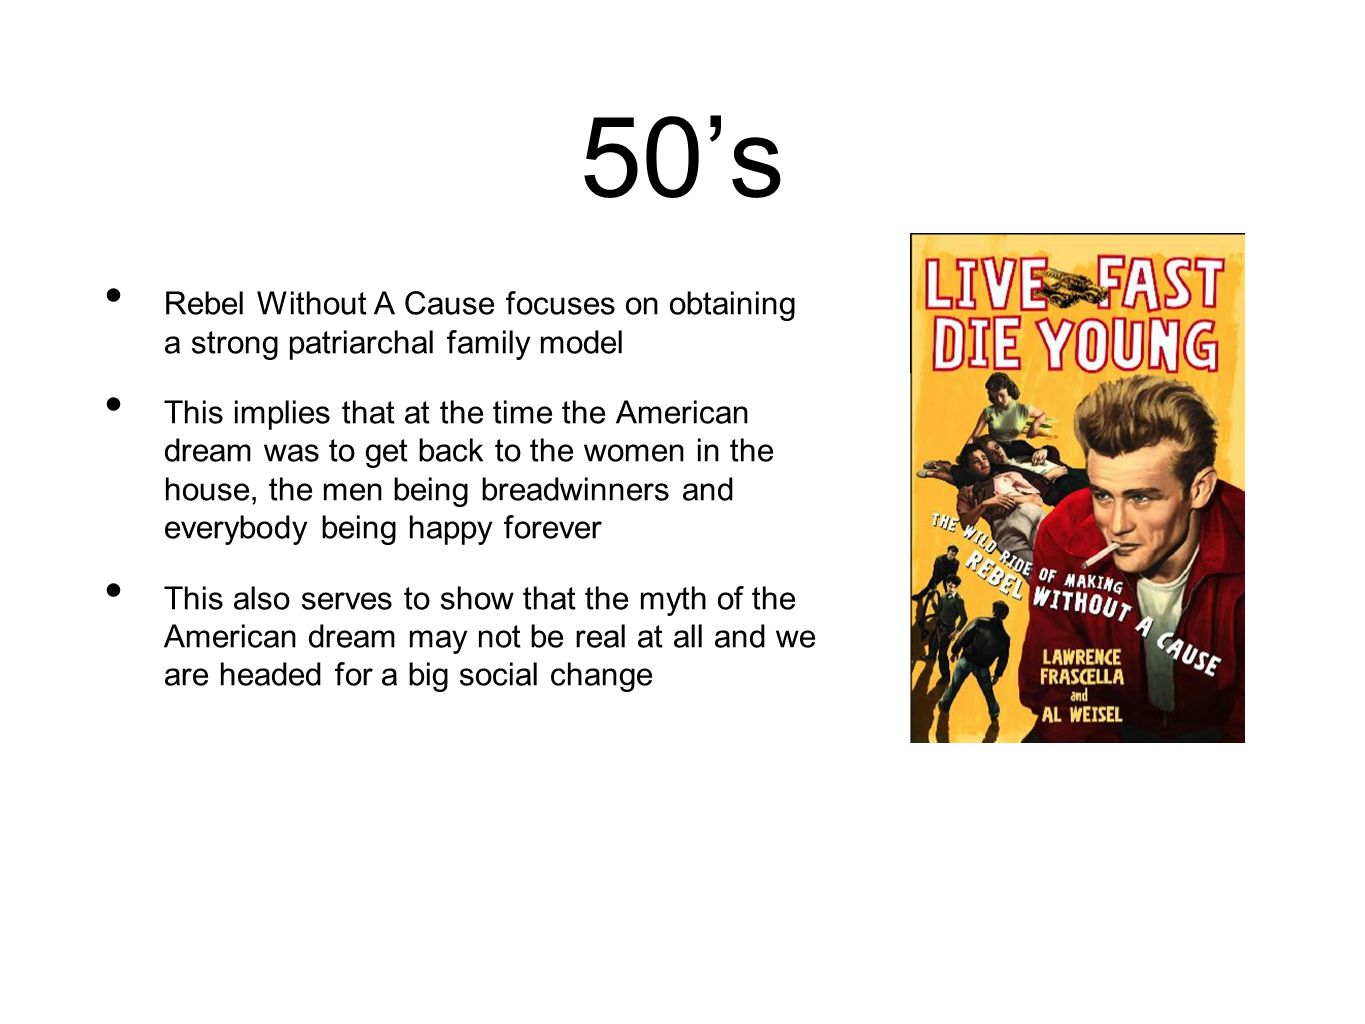 50's Rebel Without A Cause focuses on obtaining a strong patriarchal family model This implies that at the time the American dream was to get back to the women in the house, the men being breadwinners and everybody being happy forever This also serves to show that the myth of the American dream may not be real at all and we are headed for a big social change